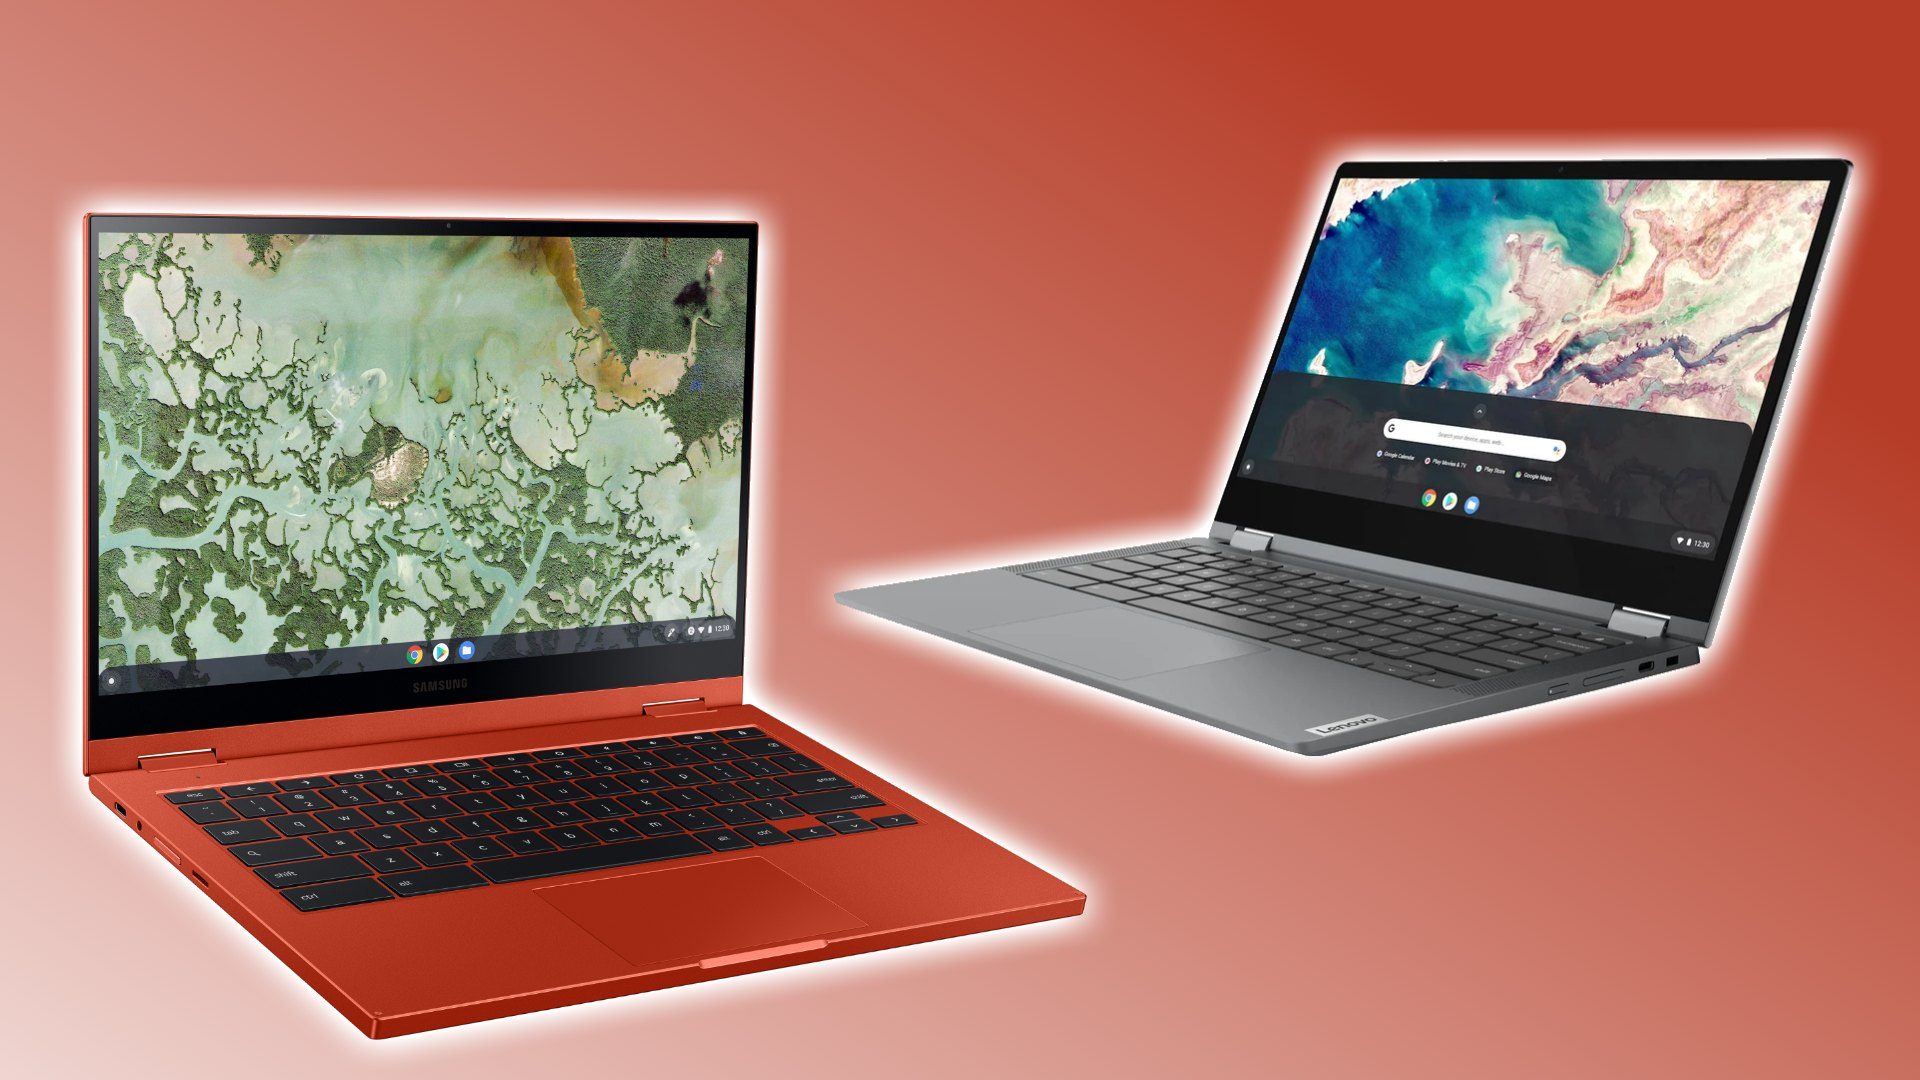 The upgraded Lenovo Flex 5 is putting serious pressure on Samsung's new Galaxy Chromebook 2